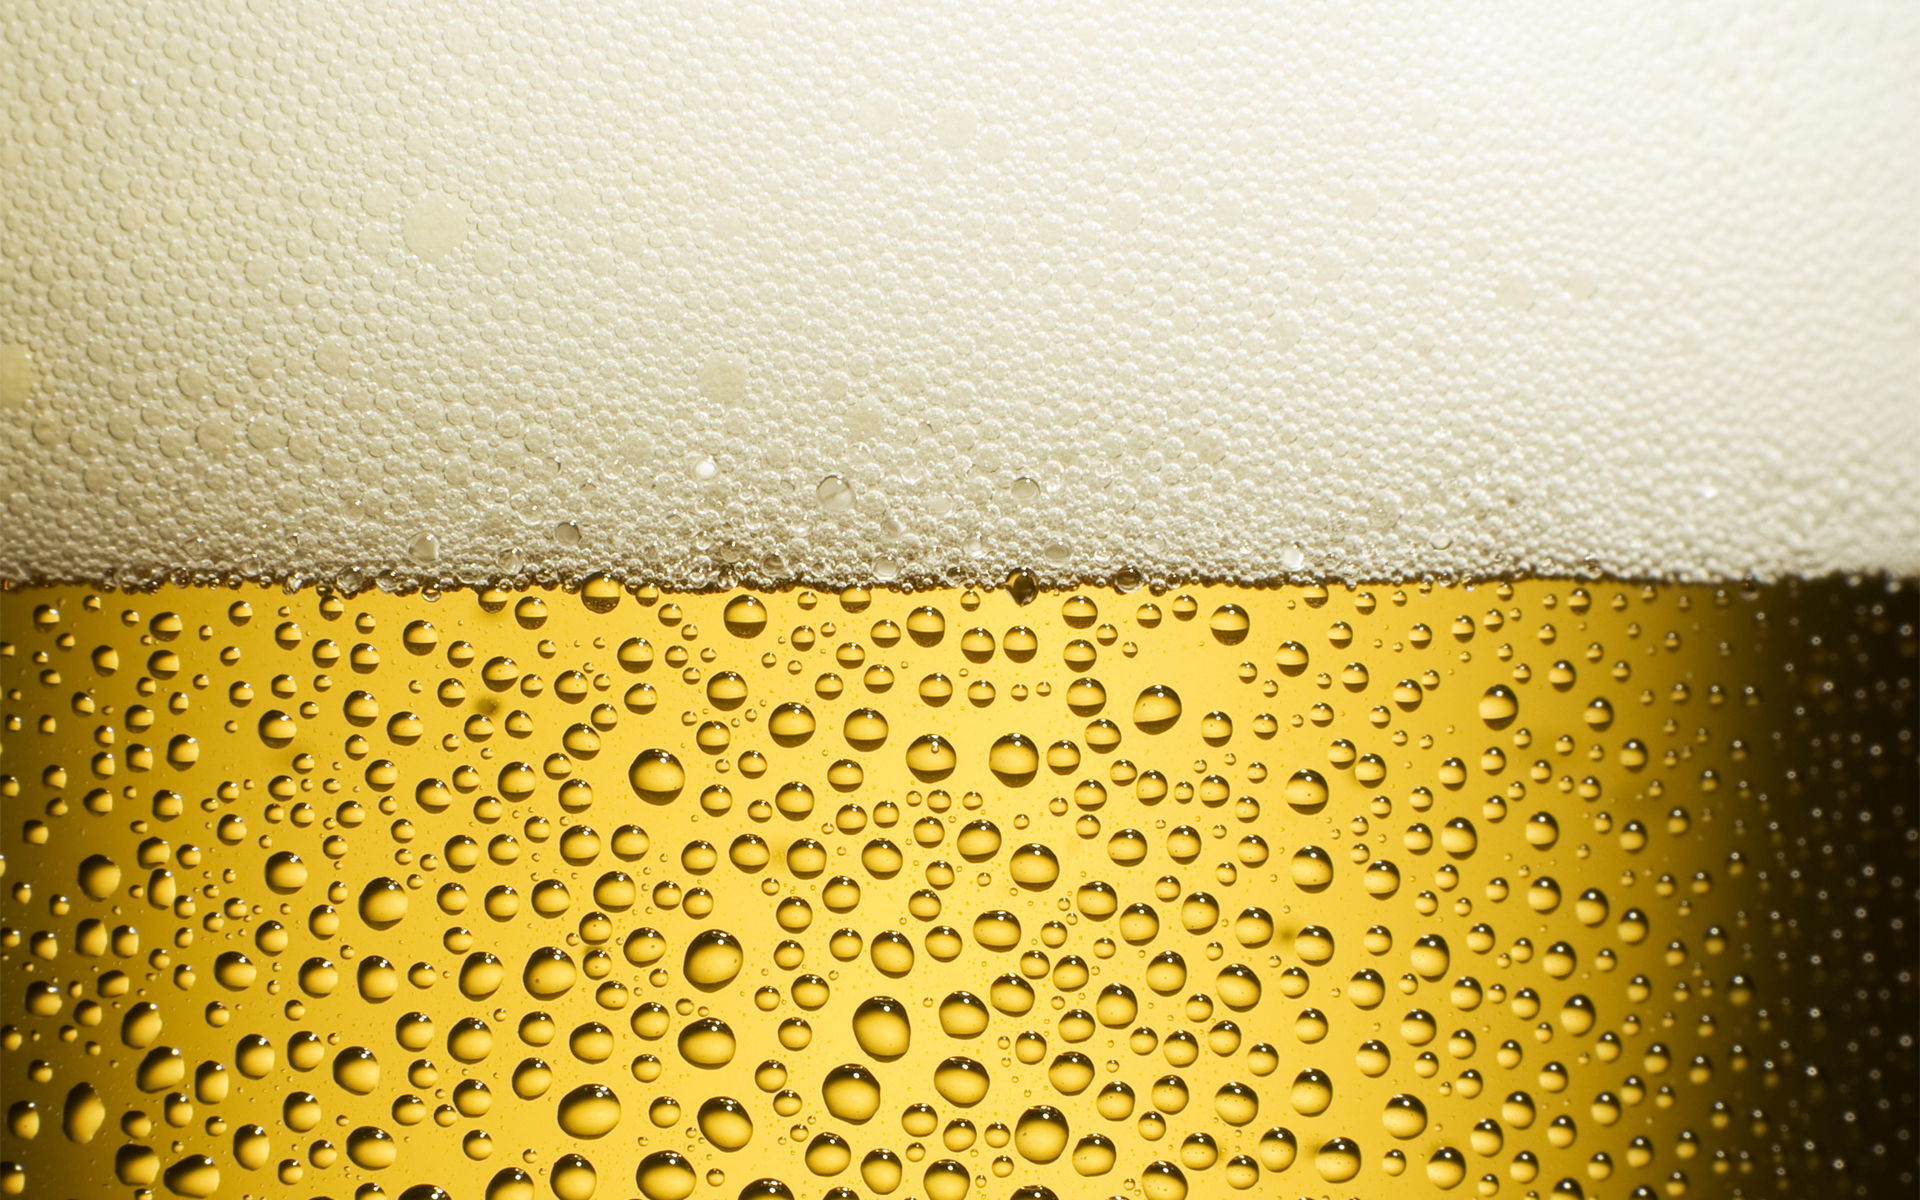 пена, пиво, texture, background, photo, beer background texture